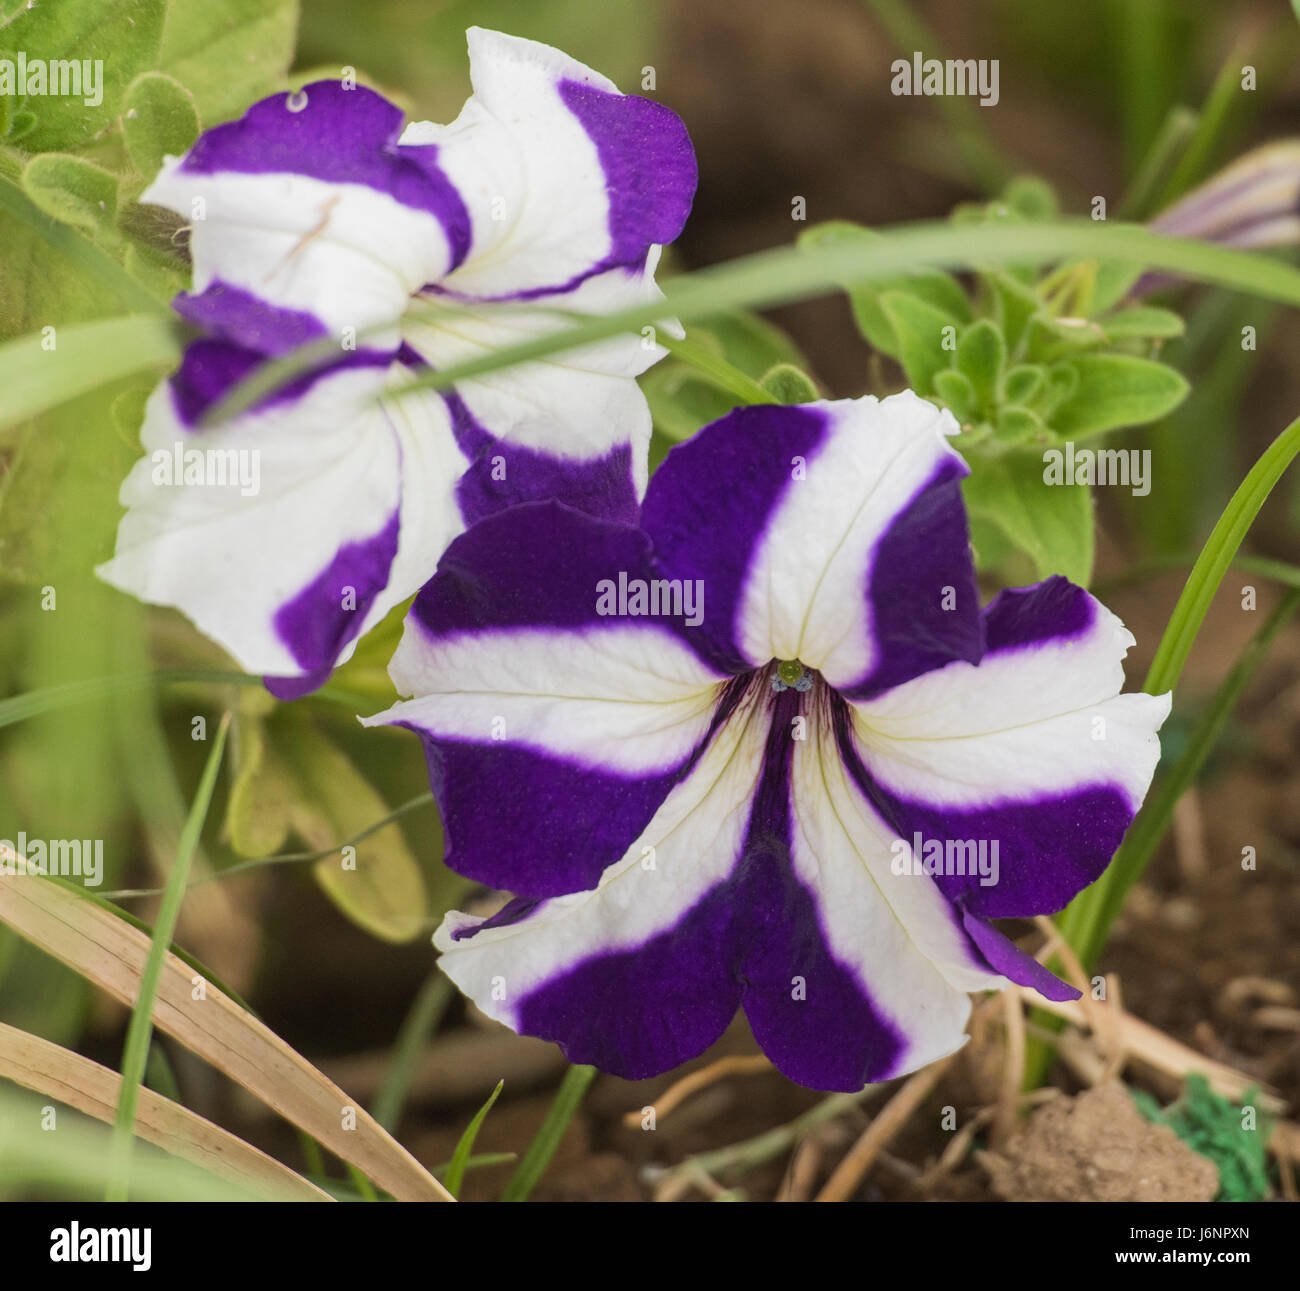 Close up detail of a purple and white striped pansy flower petals close up detail of a purple and white striped pansy flower petals and stigma in garden mightylinksfo